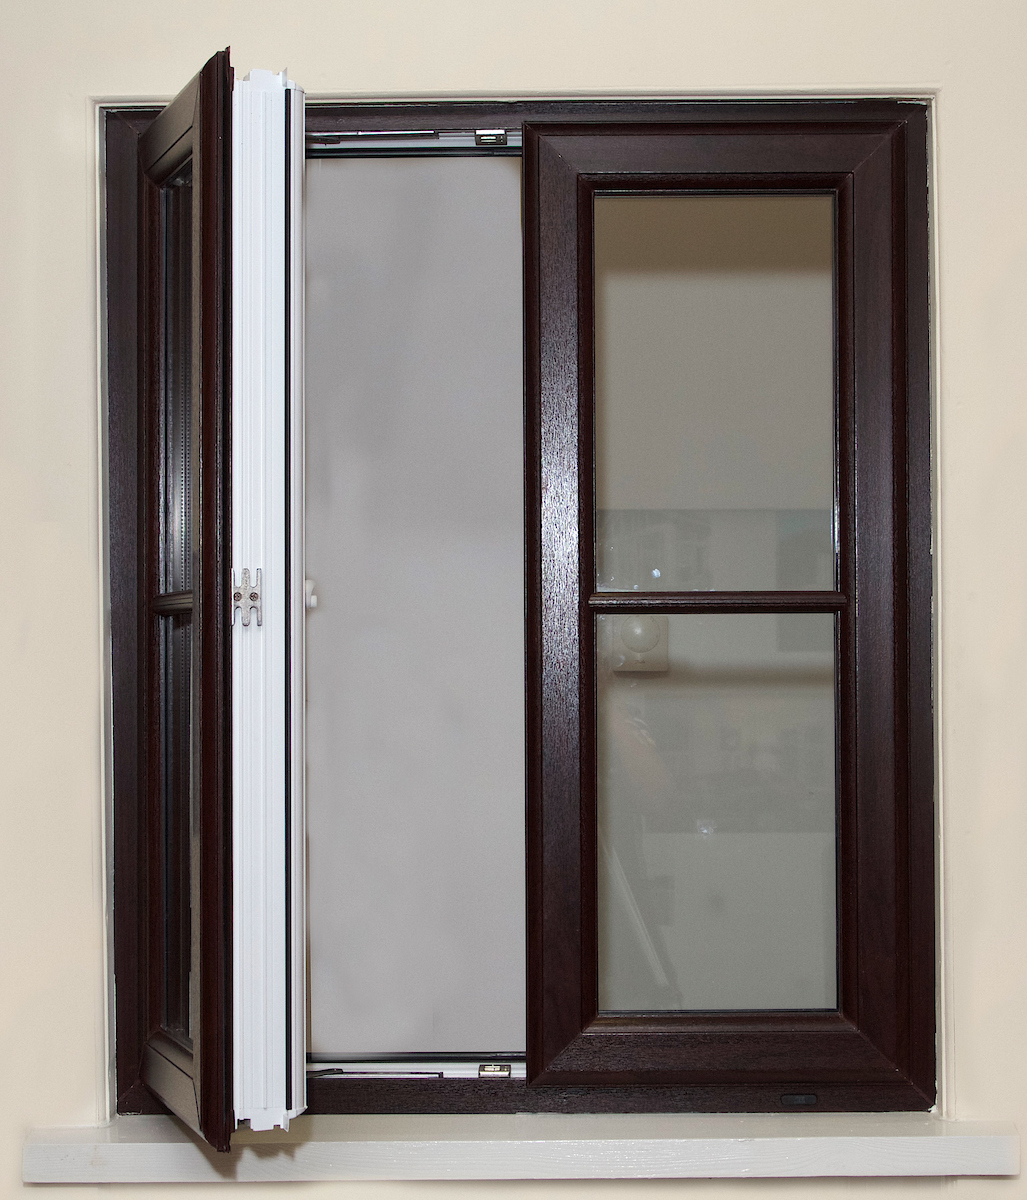 French windows replacement french window suppliers for French window